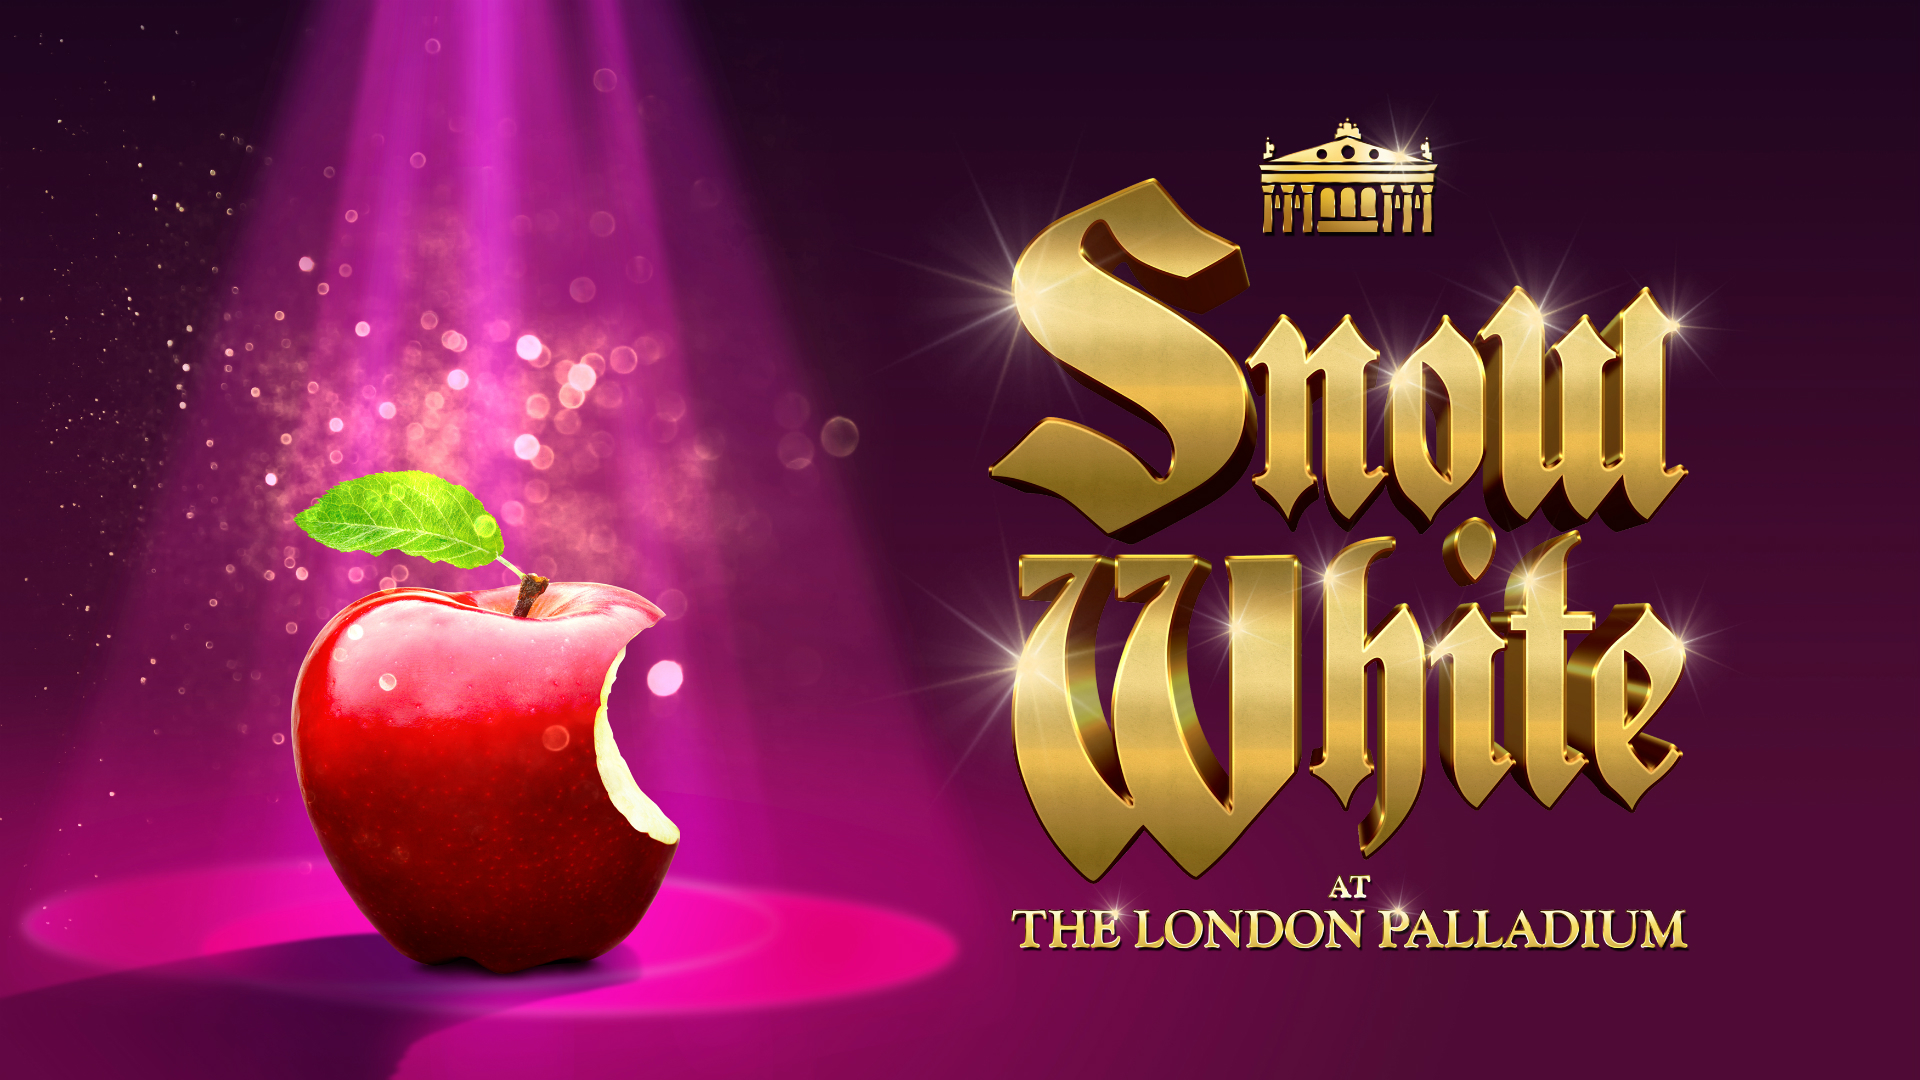 Snow White at the London Palladium. Image courtesy of Premier PR